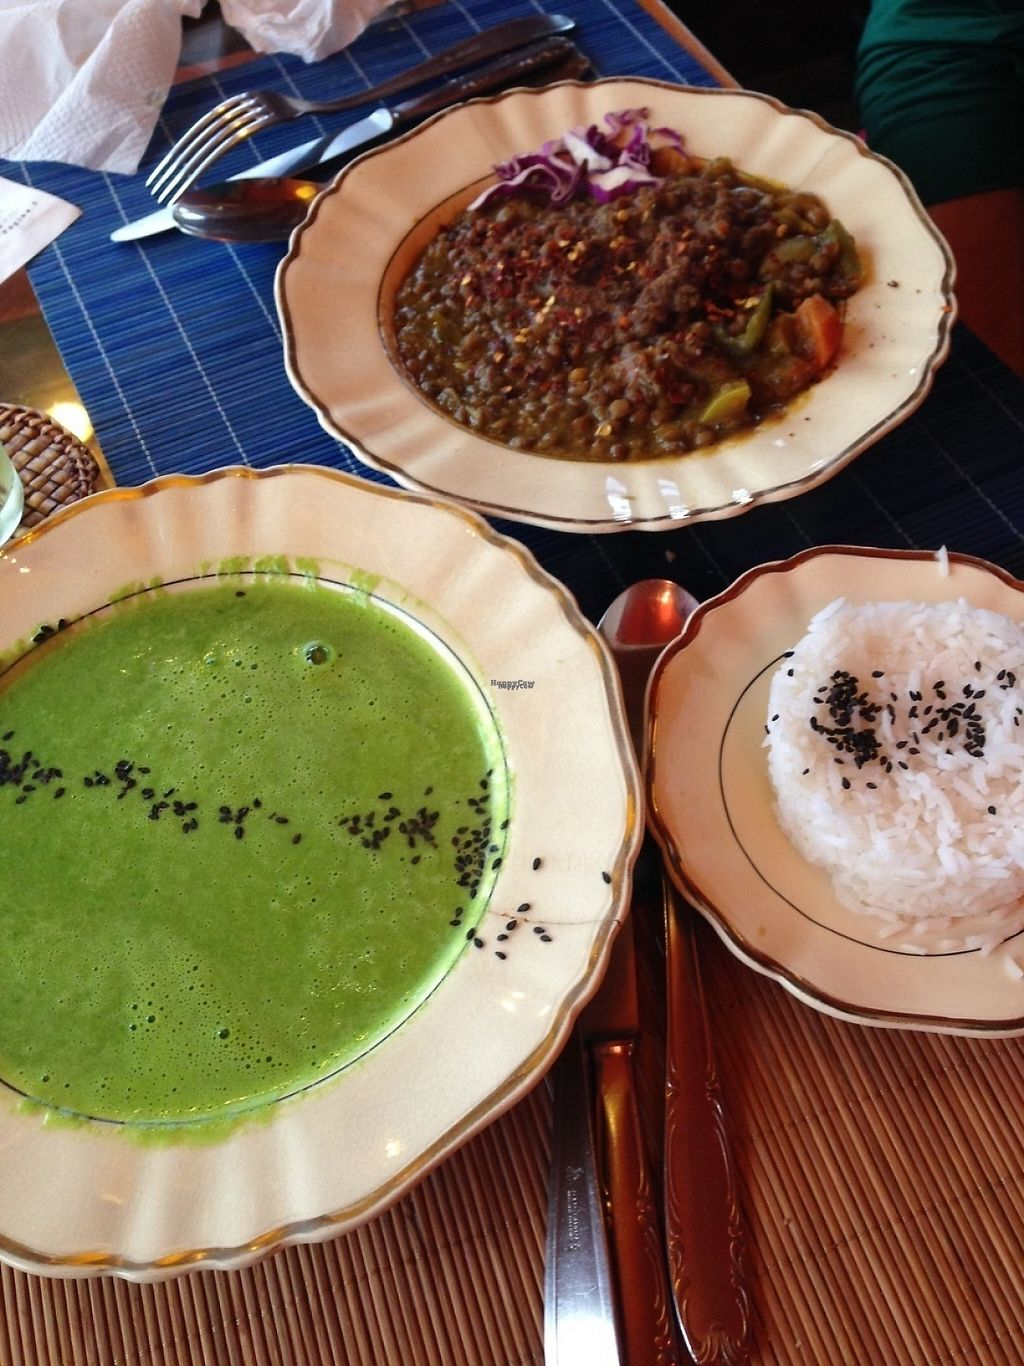 """Photo of Prana Bar Natural  by <a href=""""/members/profile/EmilyNoelle"""">EmilyNoelle</a> <br/>Spinach soup and Indian Dal.  <br/> January 21, 2017  - <a href='/contact/abuse/image/25074/214284'>Report</a>"""